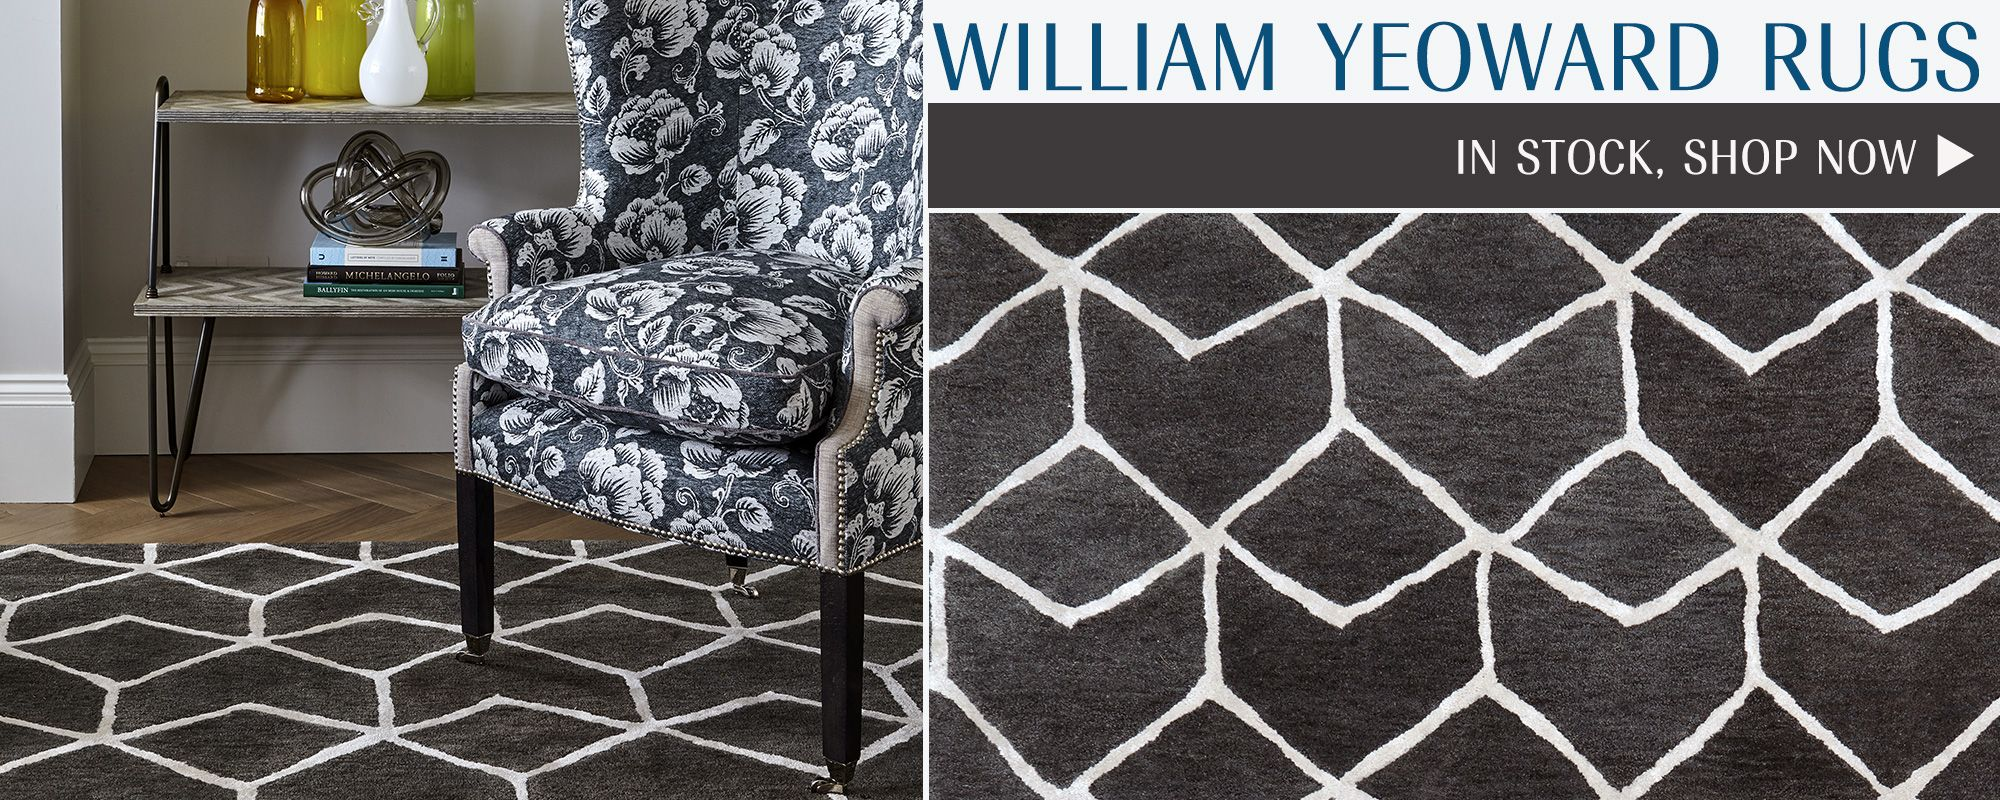 William Yeoward Rugs